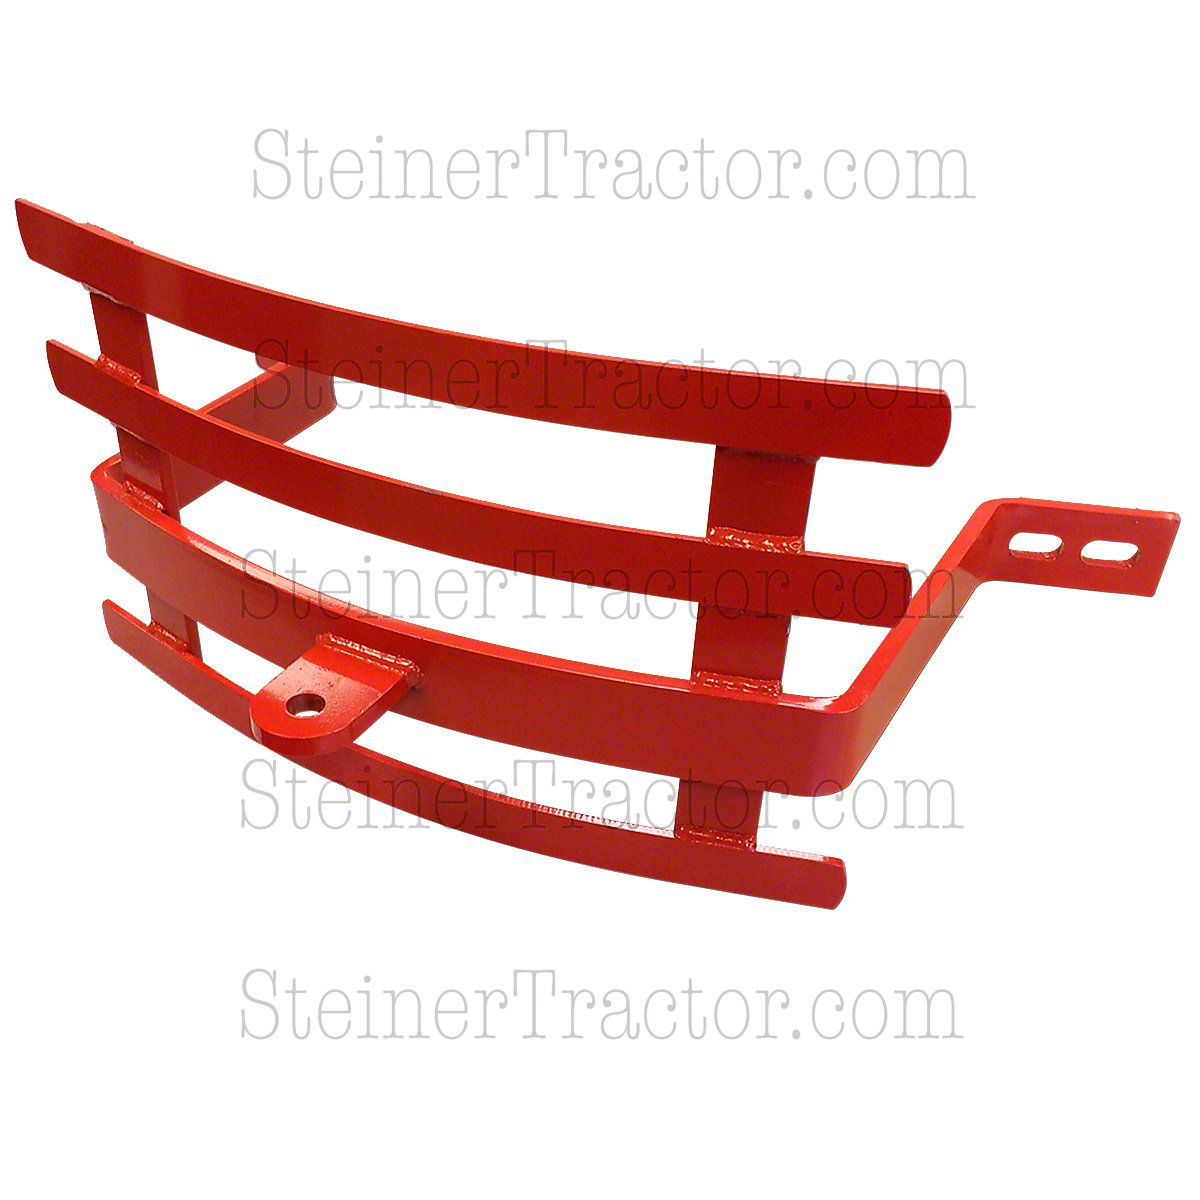 medium resolution of fds031 heavy duty ford front bumper fits 8n 9n 2n naa 600 800 more